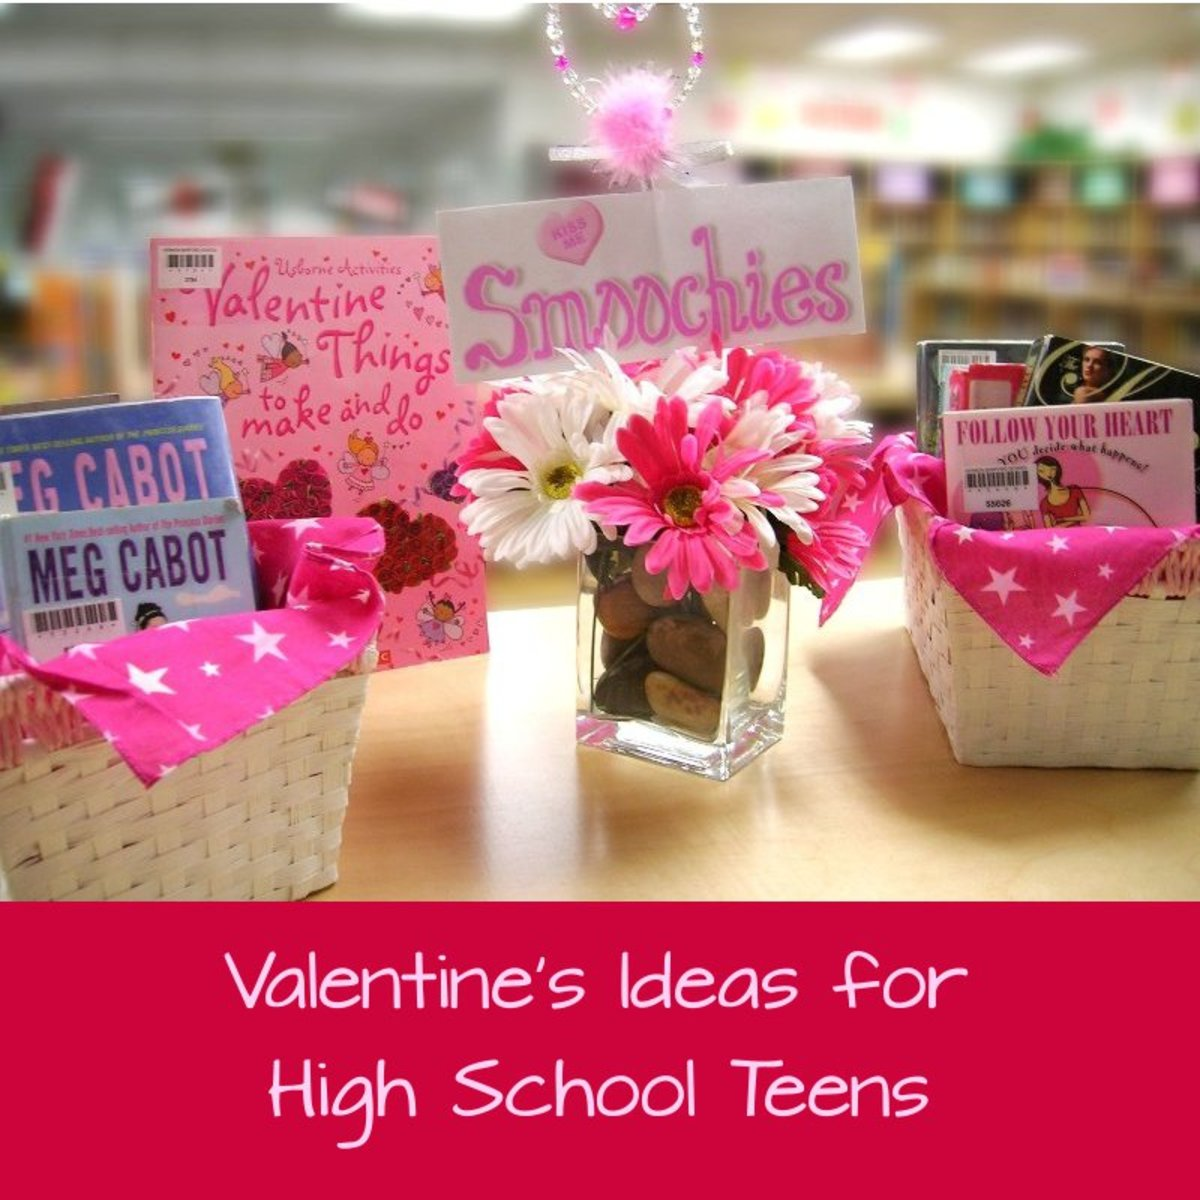 Valentine's Day Gift Ideas for High School Teens & Sweethearts